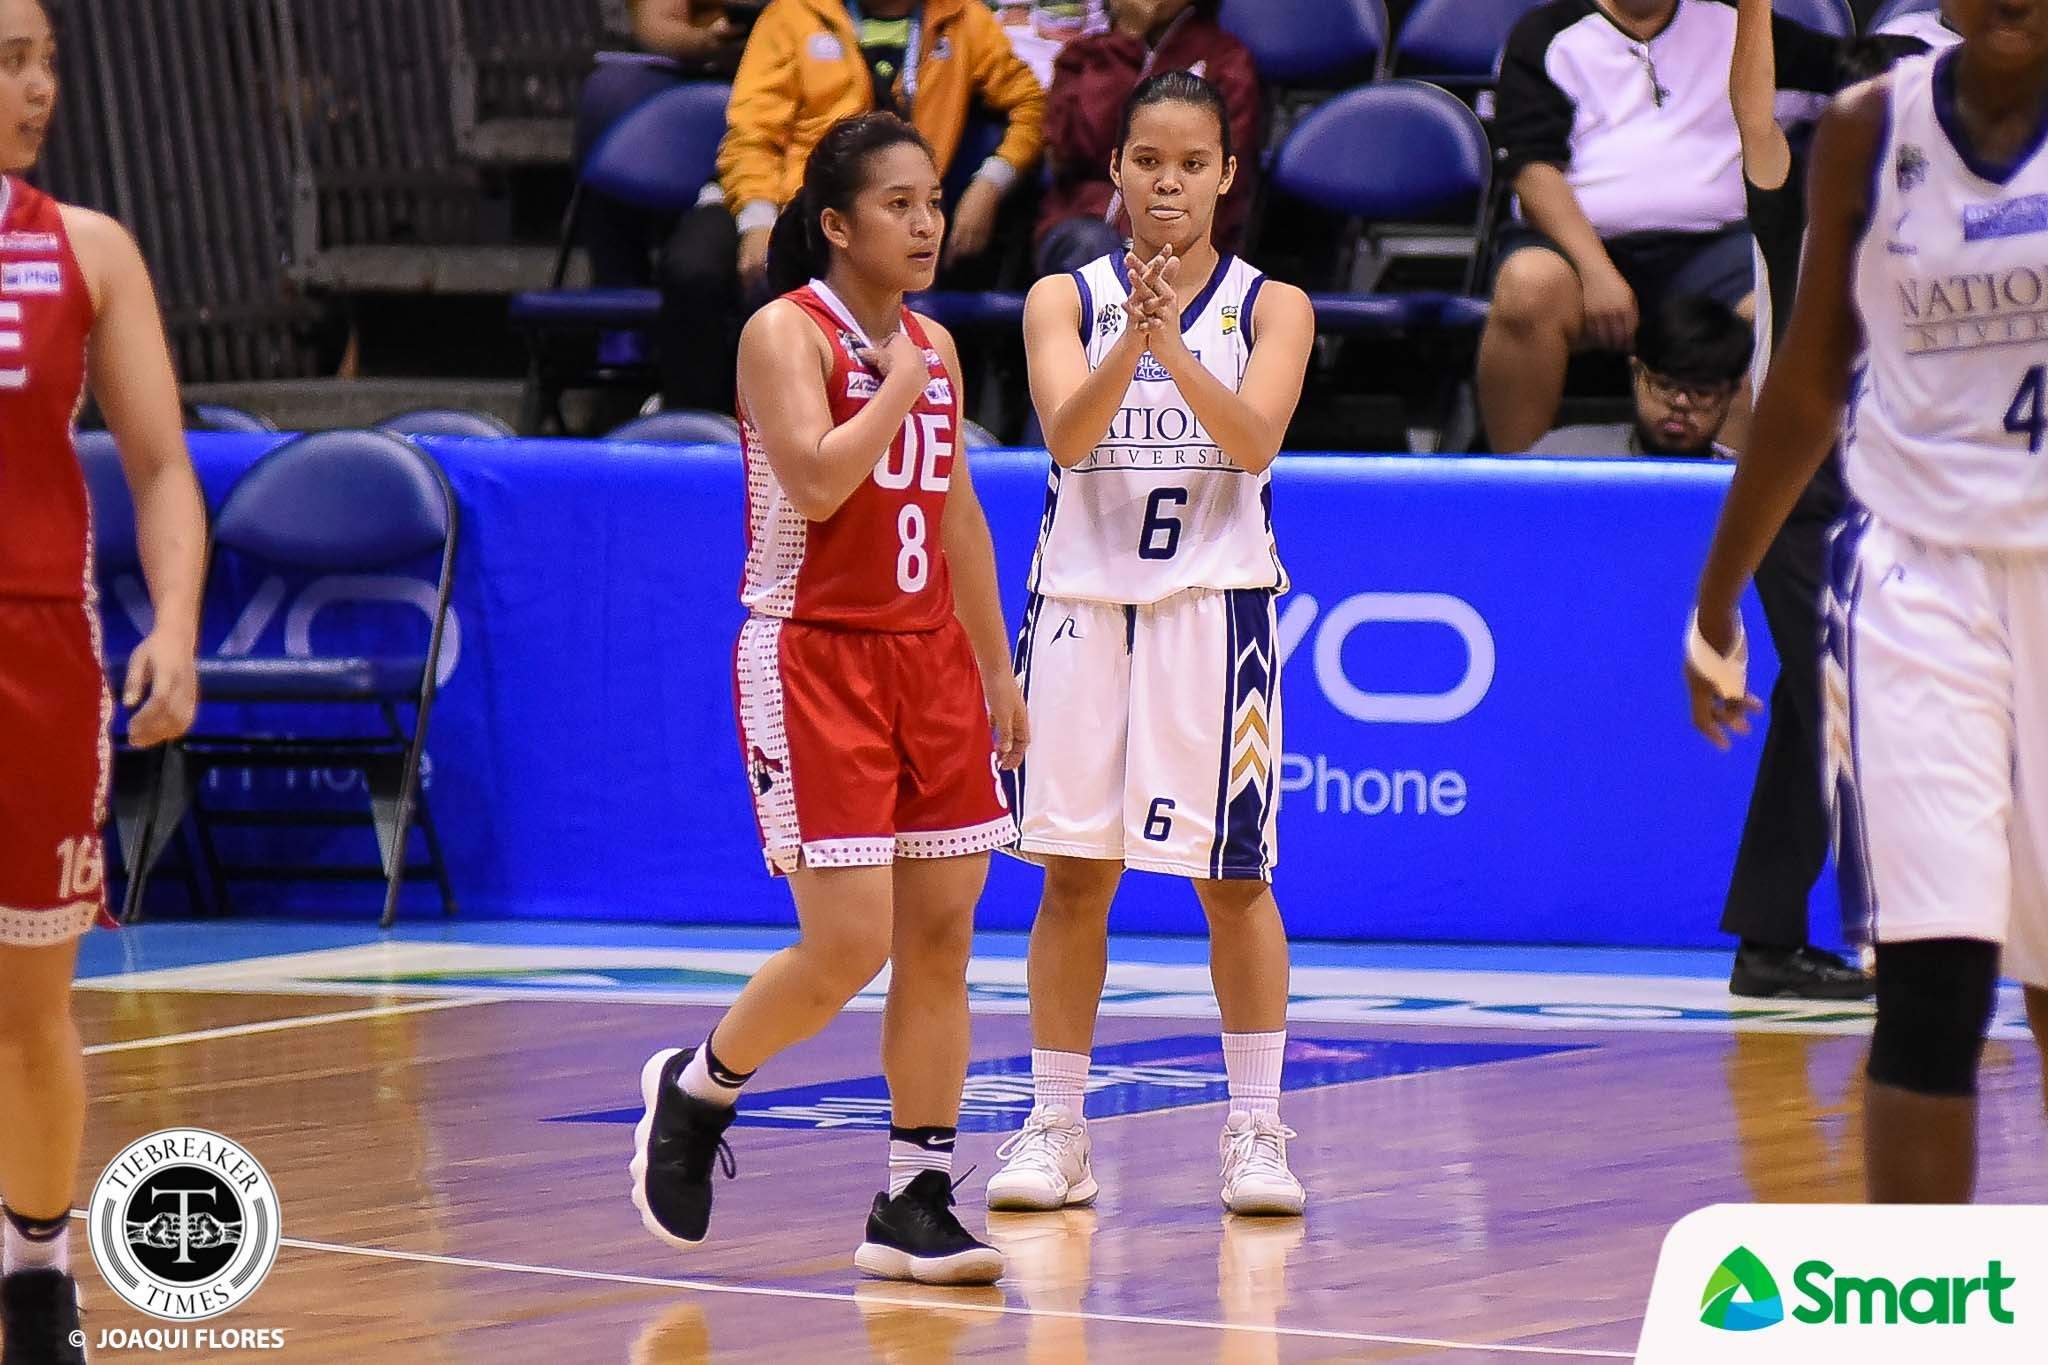 Philippine Sports News - Tiebreaker Times Trixie Antiquera goes all out in Game 1 Basketball News NU UAAP  UAAP Season 80 Women's Basketball UAAP Season 80 Trixie Antiquera Patrick Aquino NU Women's Basketball